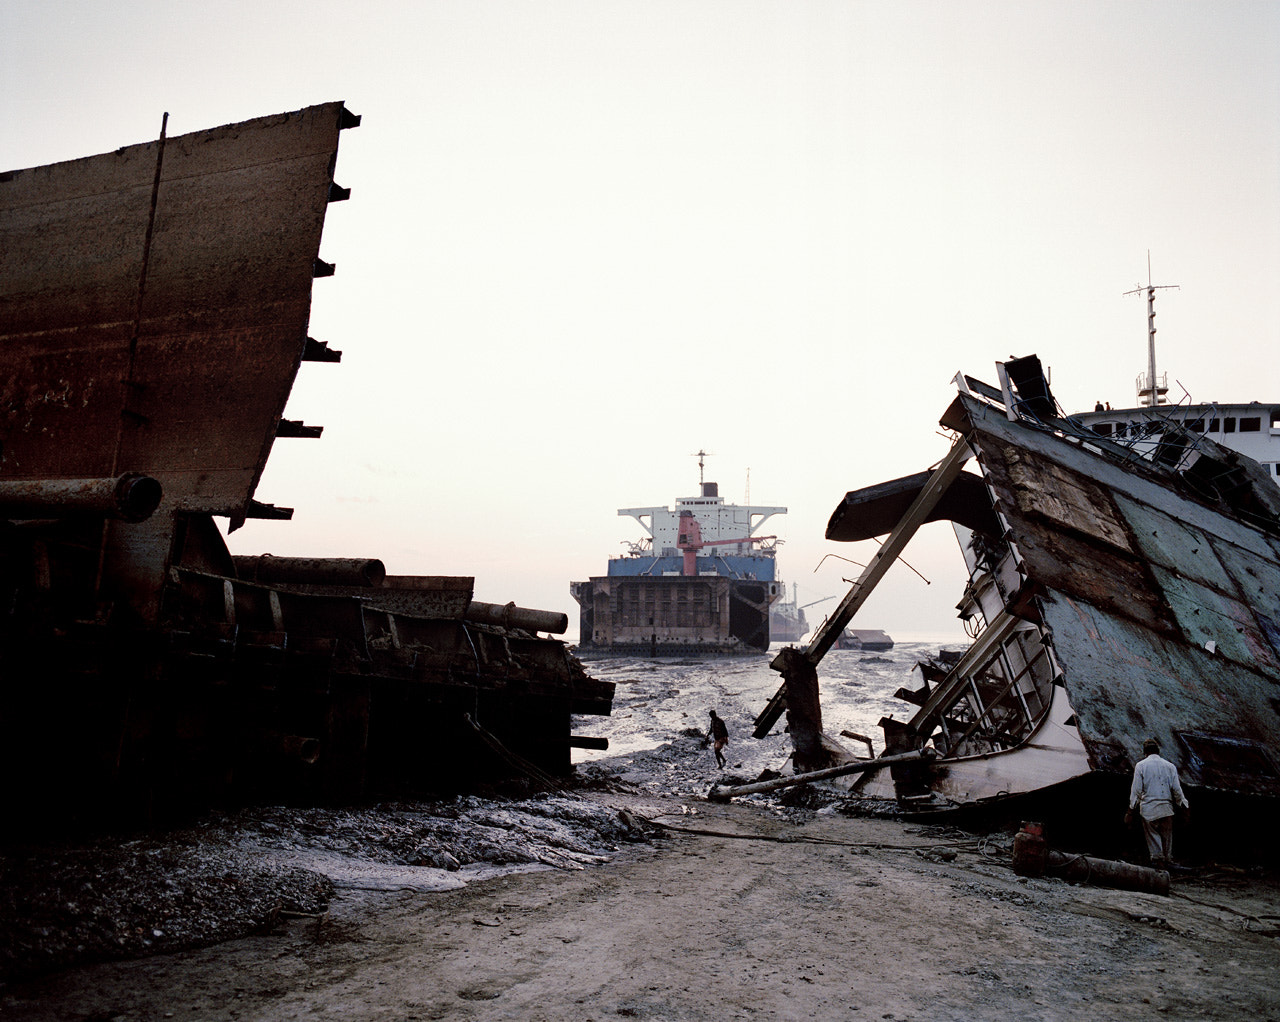 Photograph Shipbreaking, Bangladesh by Roy Zipstein on 500px